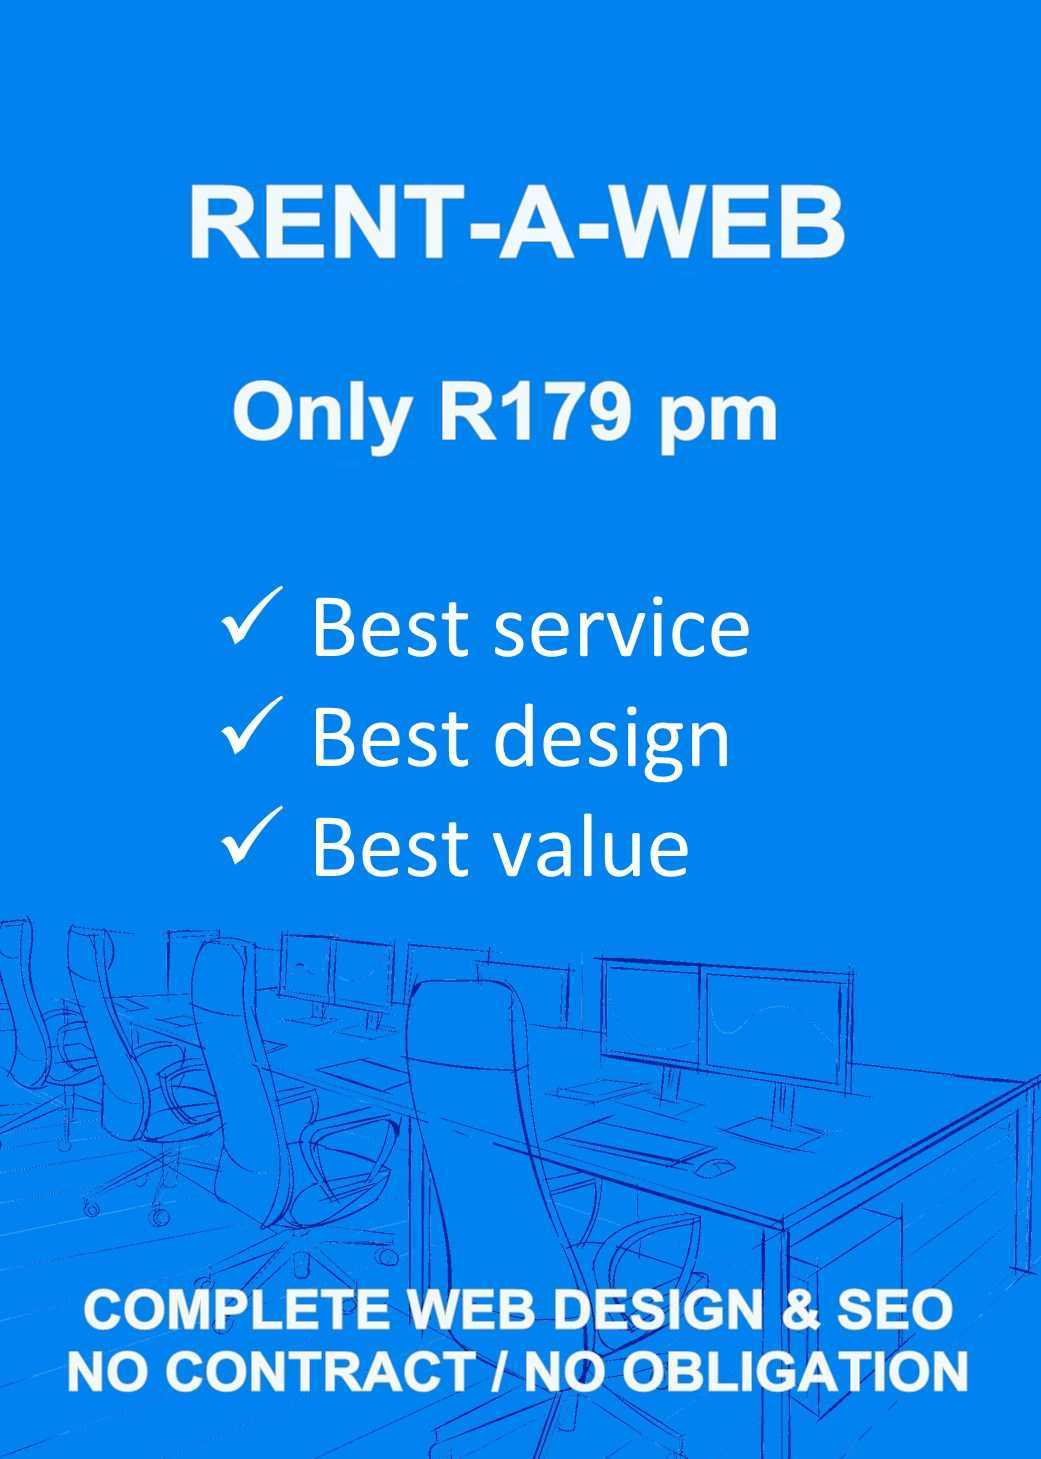 RENT-A-WEB ADVERT FOR BEETLEBOX